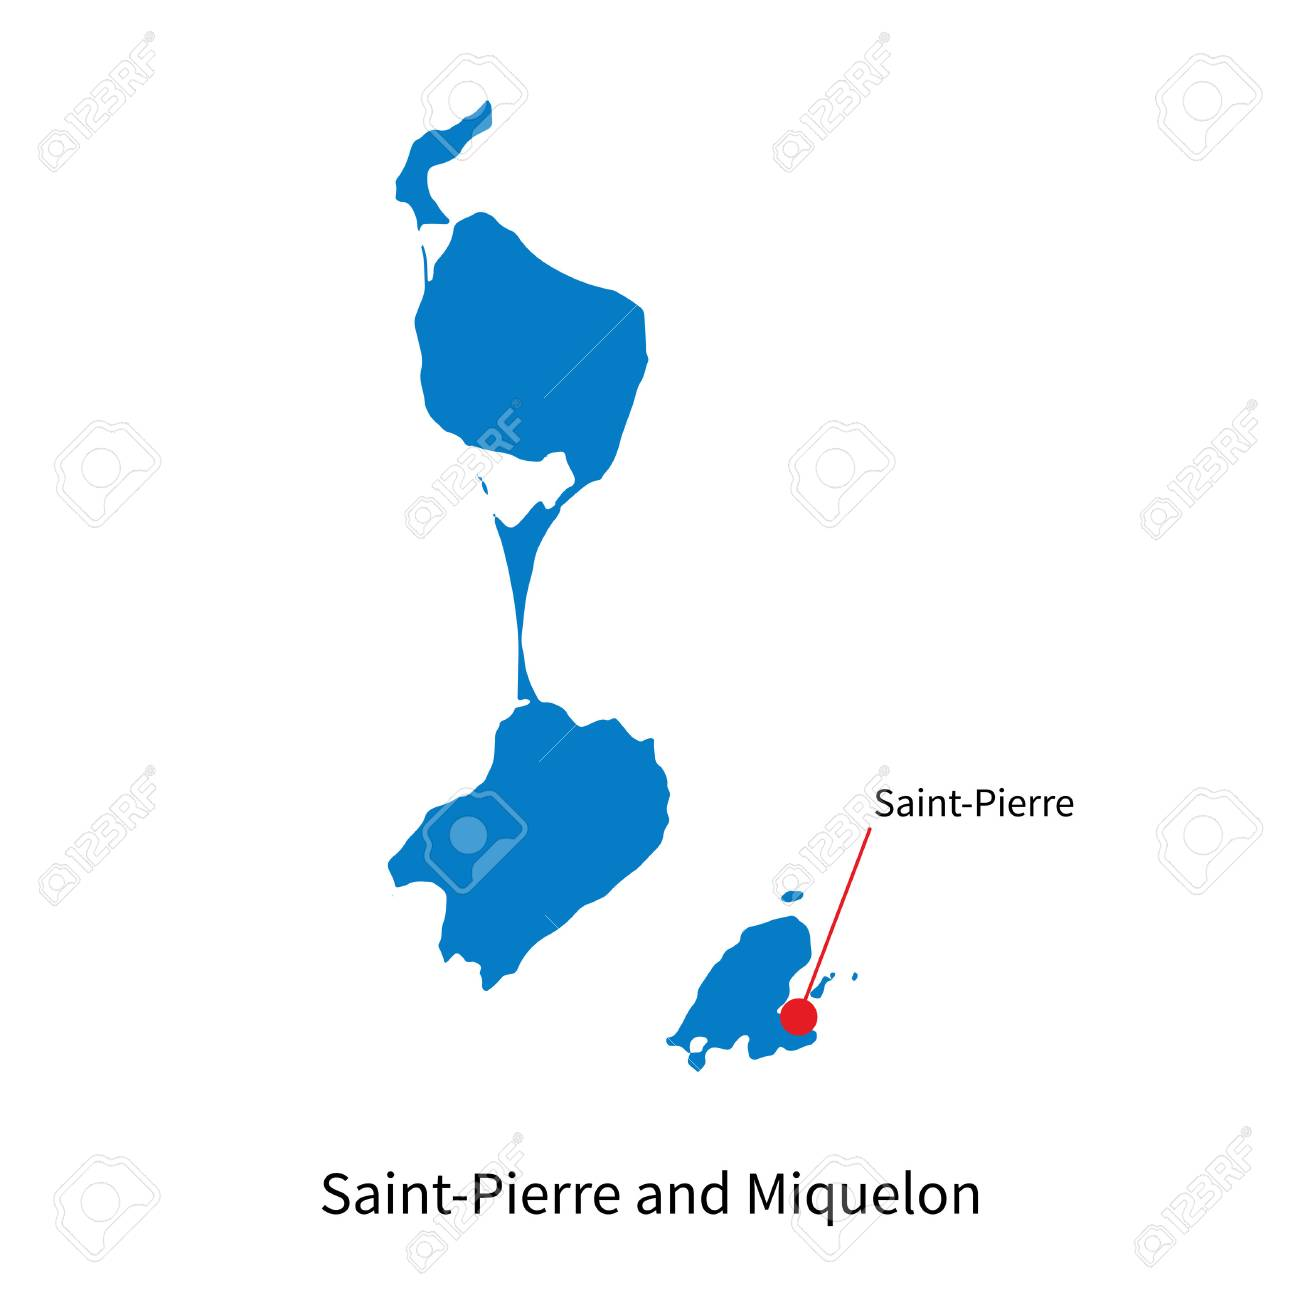 Detailed Map Of SaintPierre And Miquelon And Capital City Saint